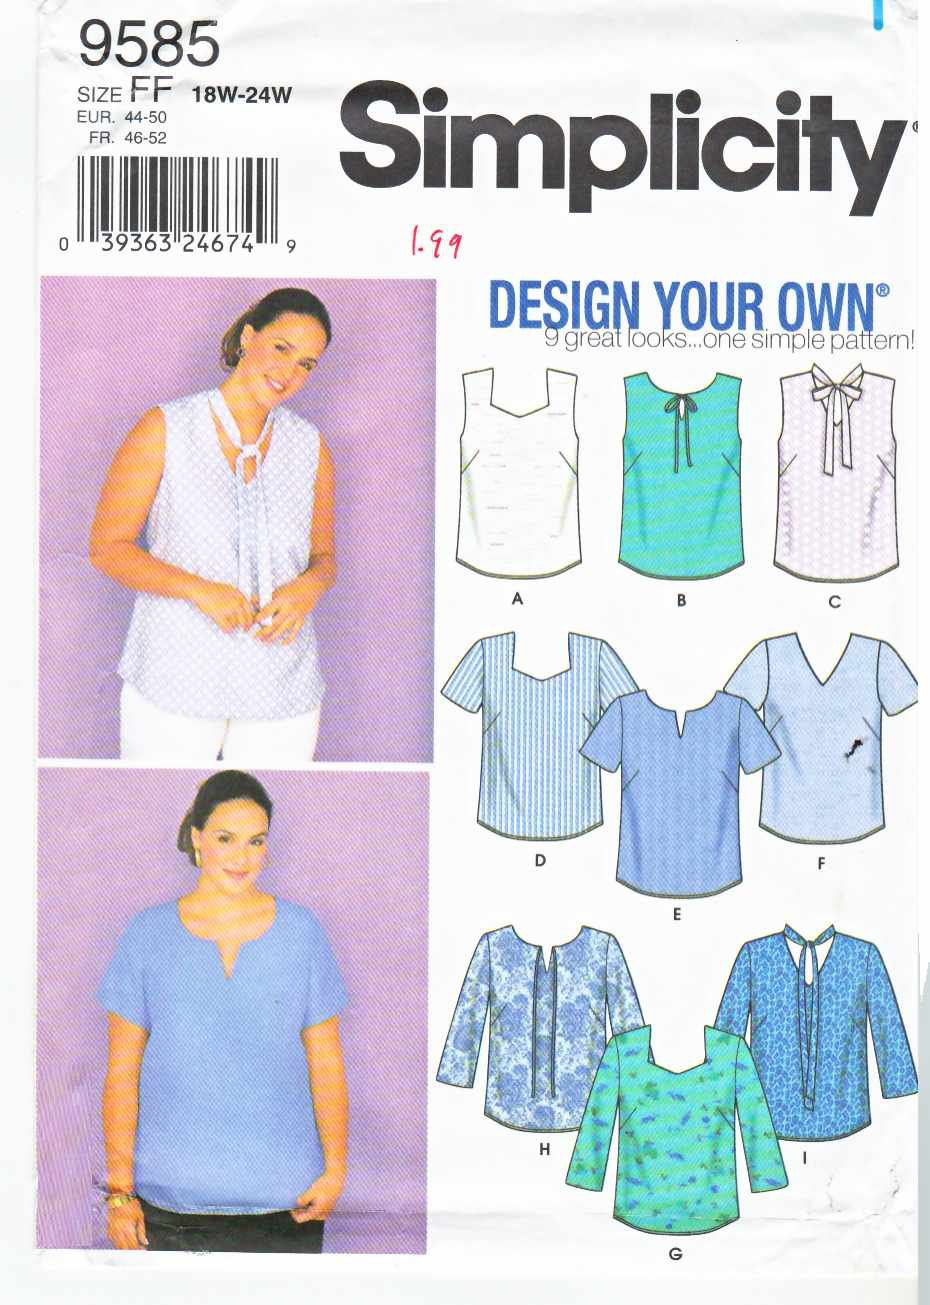 Simplicity Sewing Pattern 9585 Womens Plus Sizes 18W-24W Pullover Blouse Top Sleeve Options